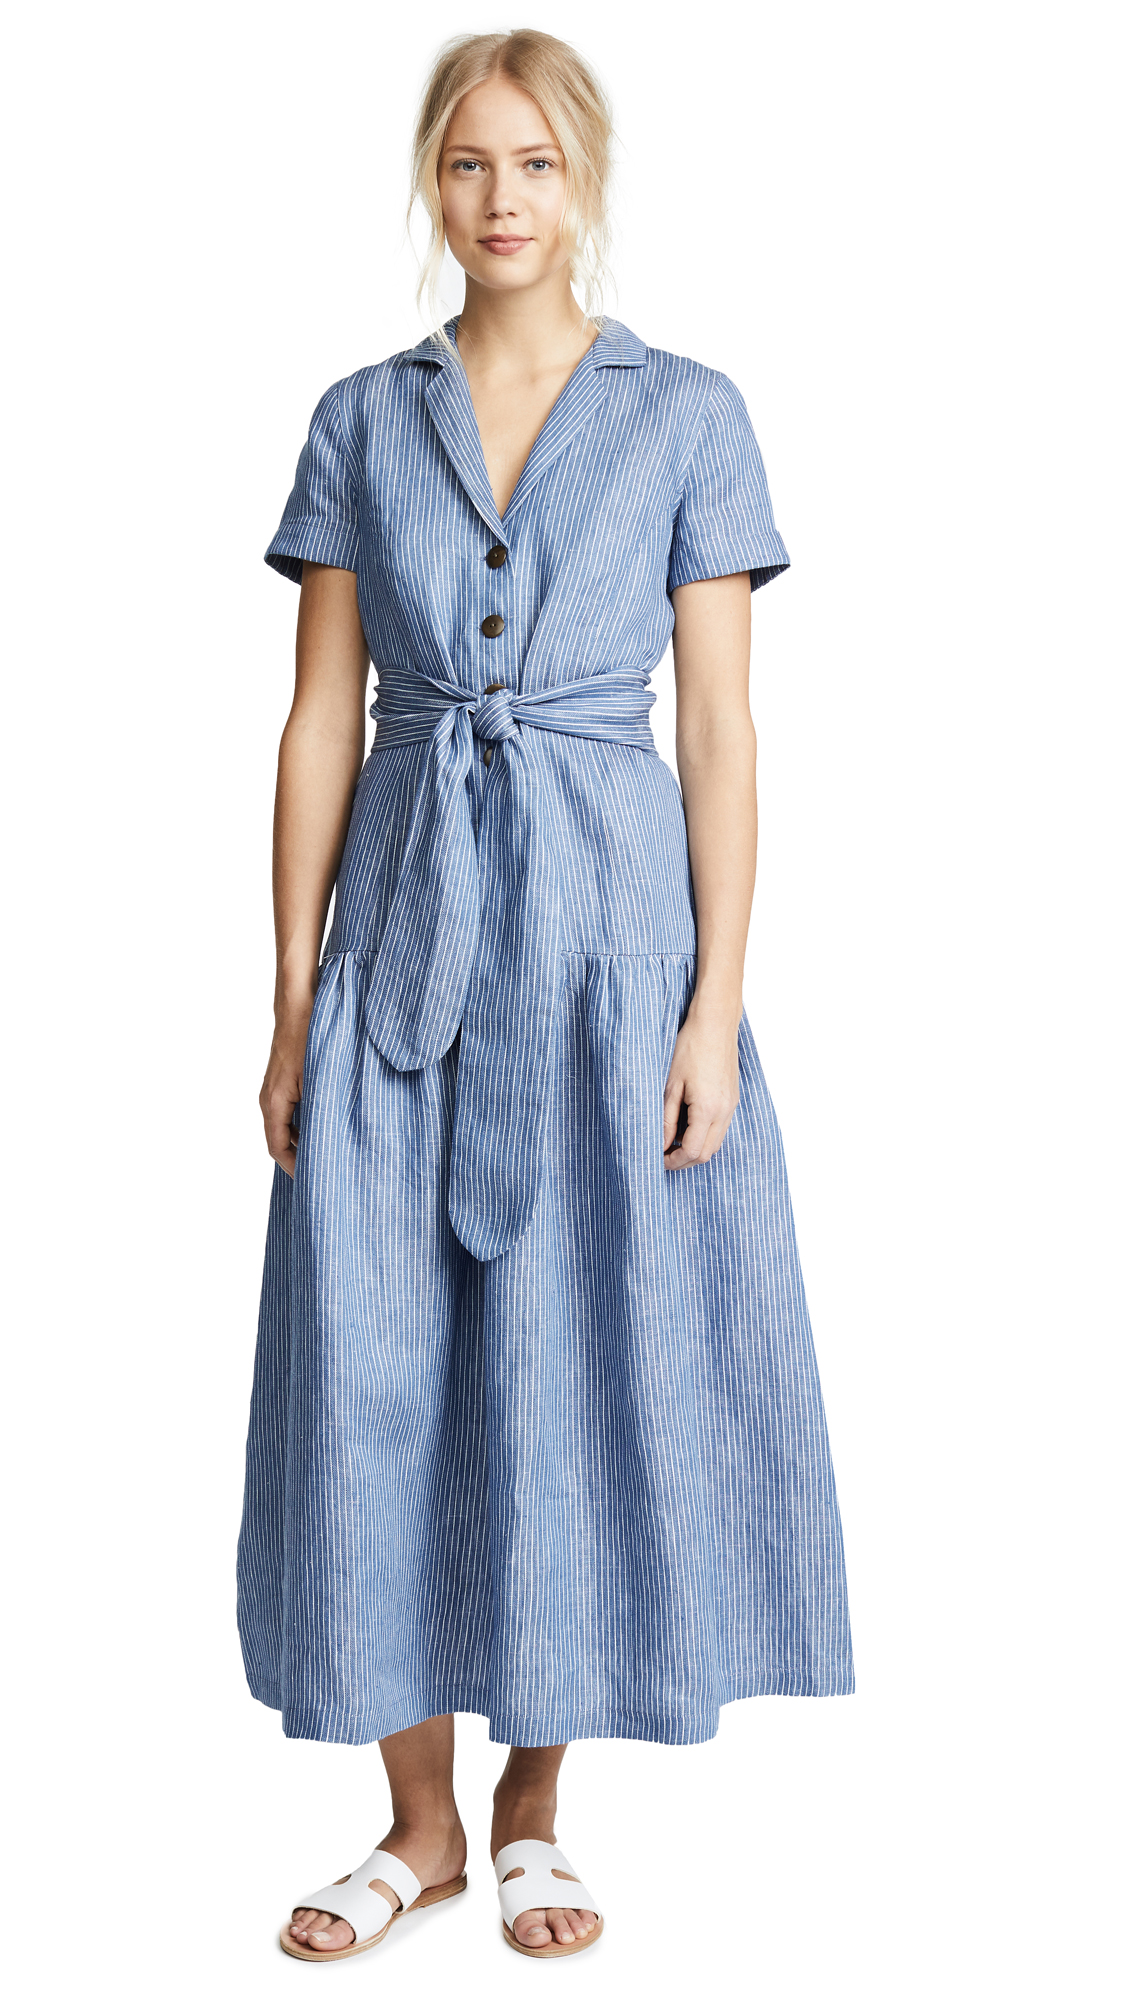 Mara Hoffman Maritza Dress In Denim